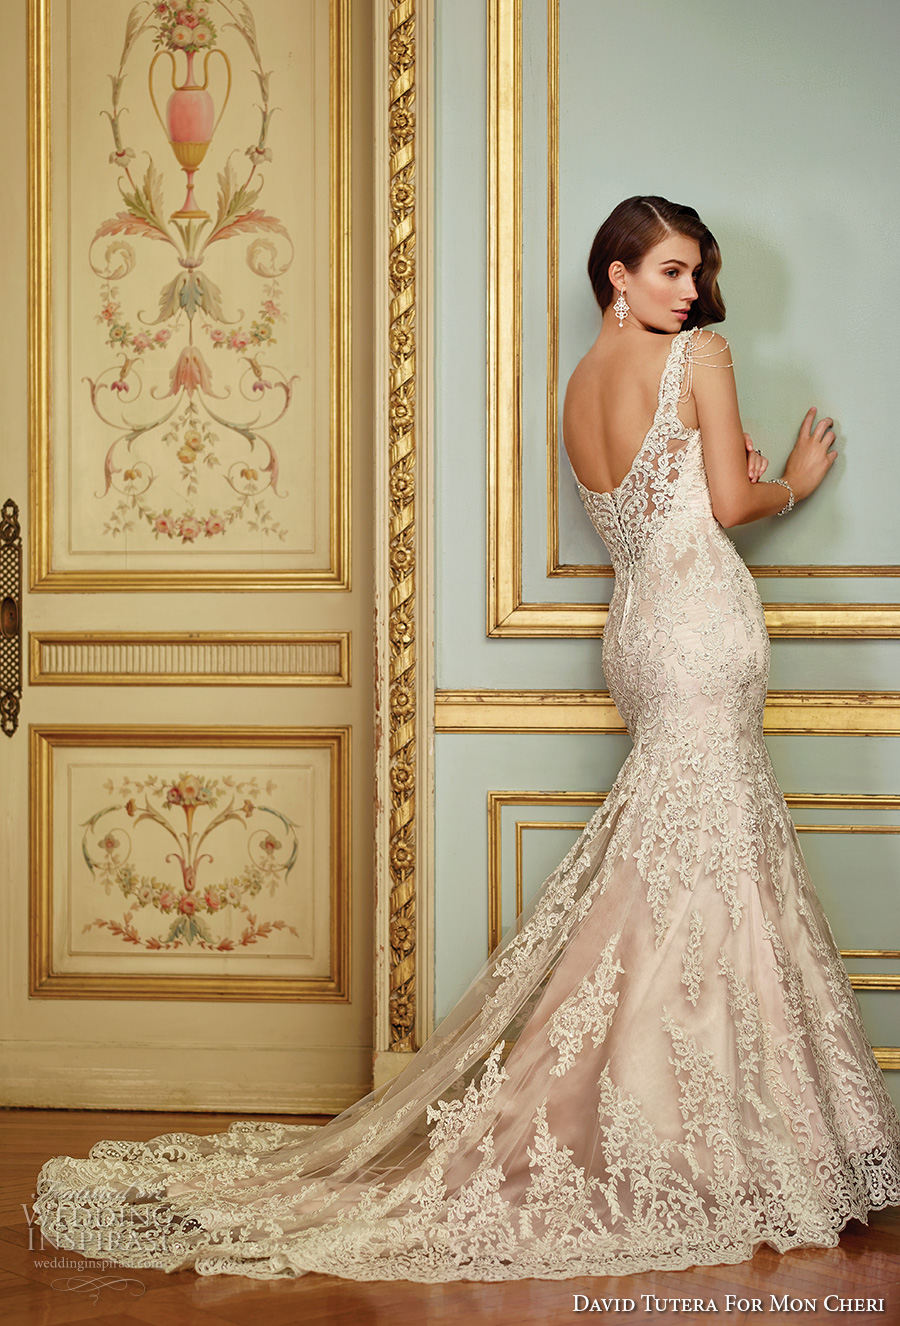 David tutera for mon cheri spring 2017 wedding dresses wedding david tutera mc spring 2017 bridal sleeveless embrodiered strap sweetheart neckline full embellishment elegant glamorous fit junglespirit Choice Image